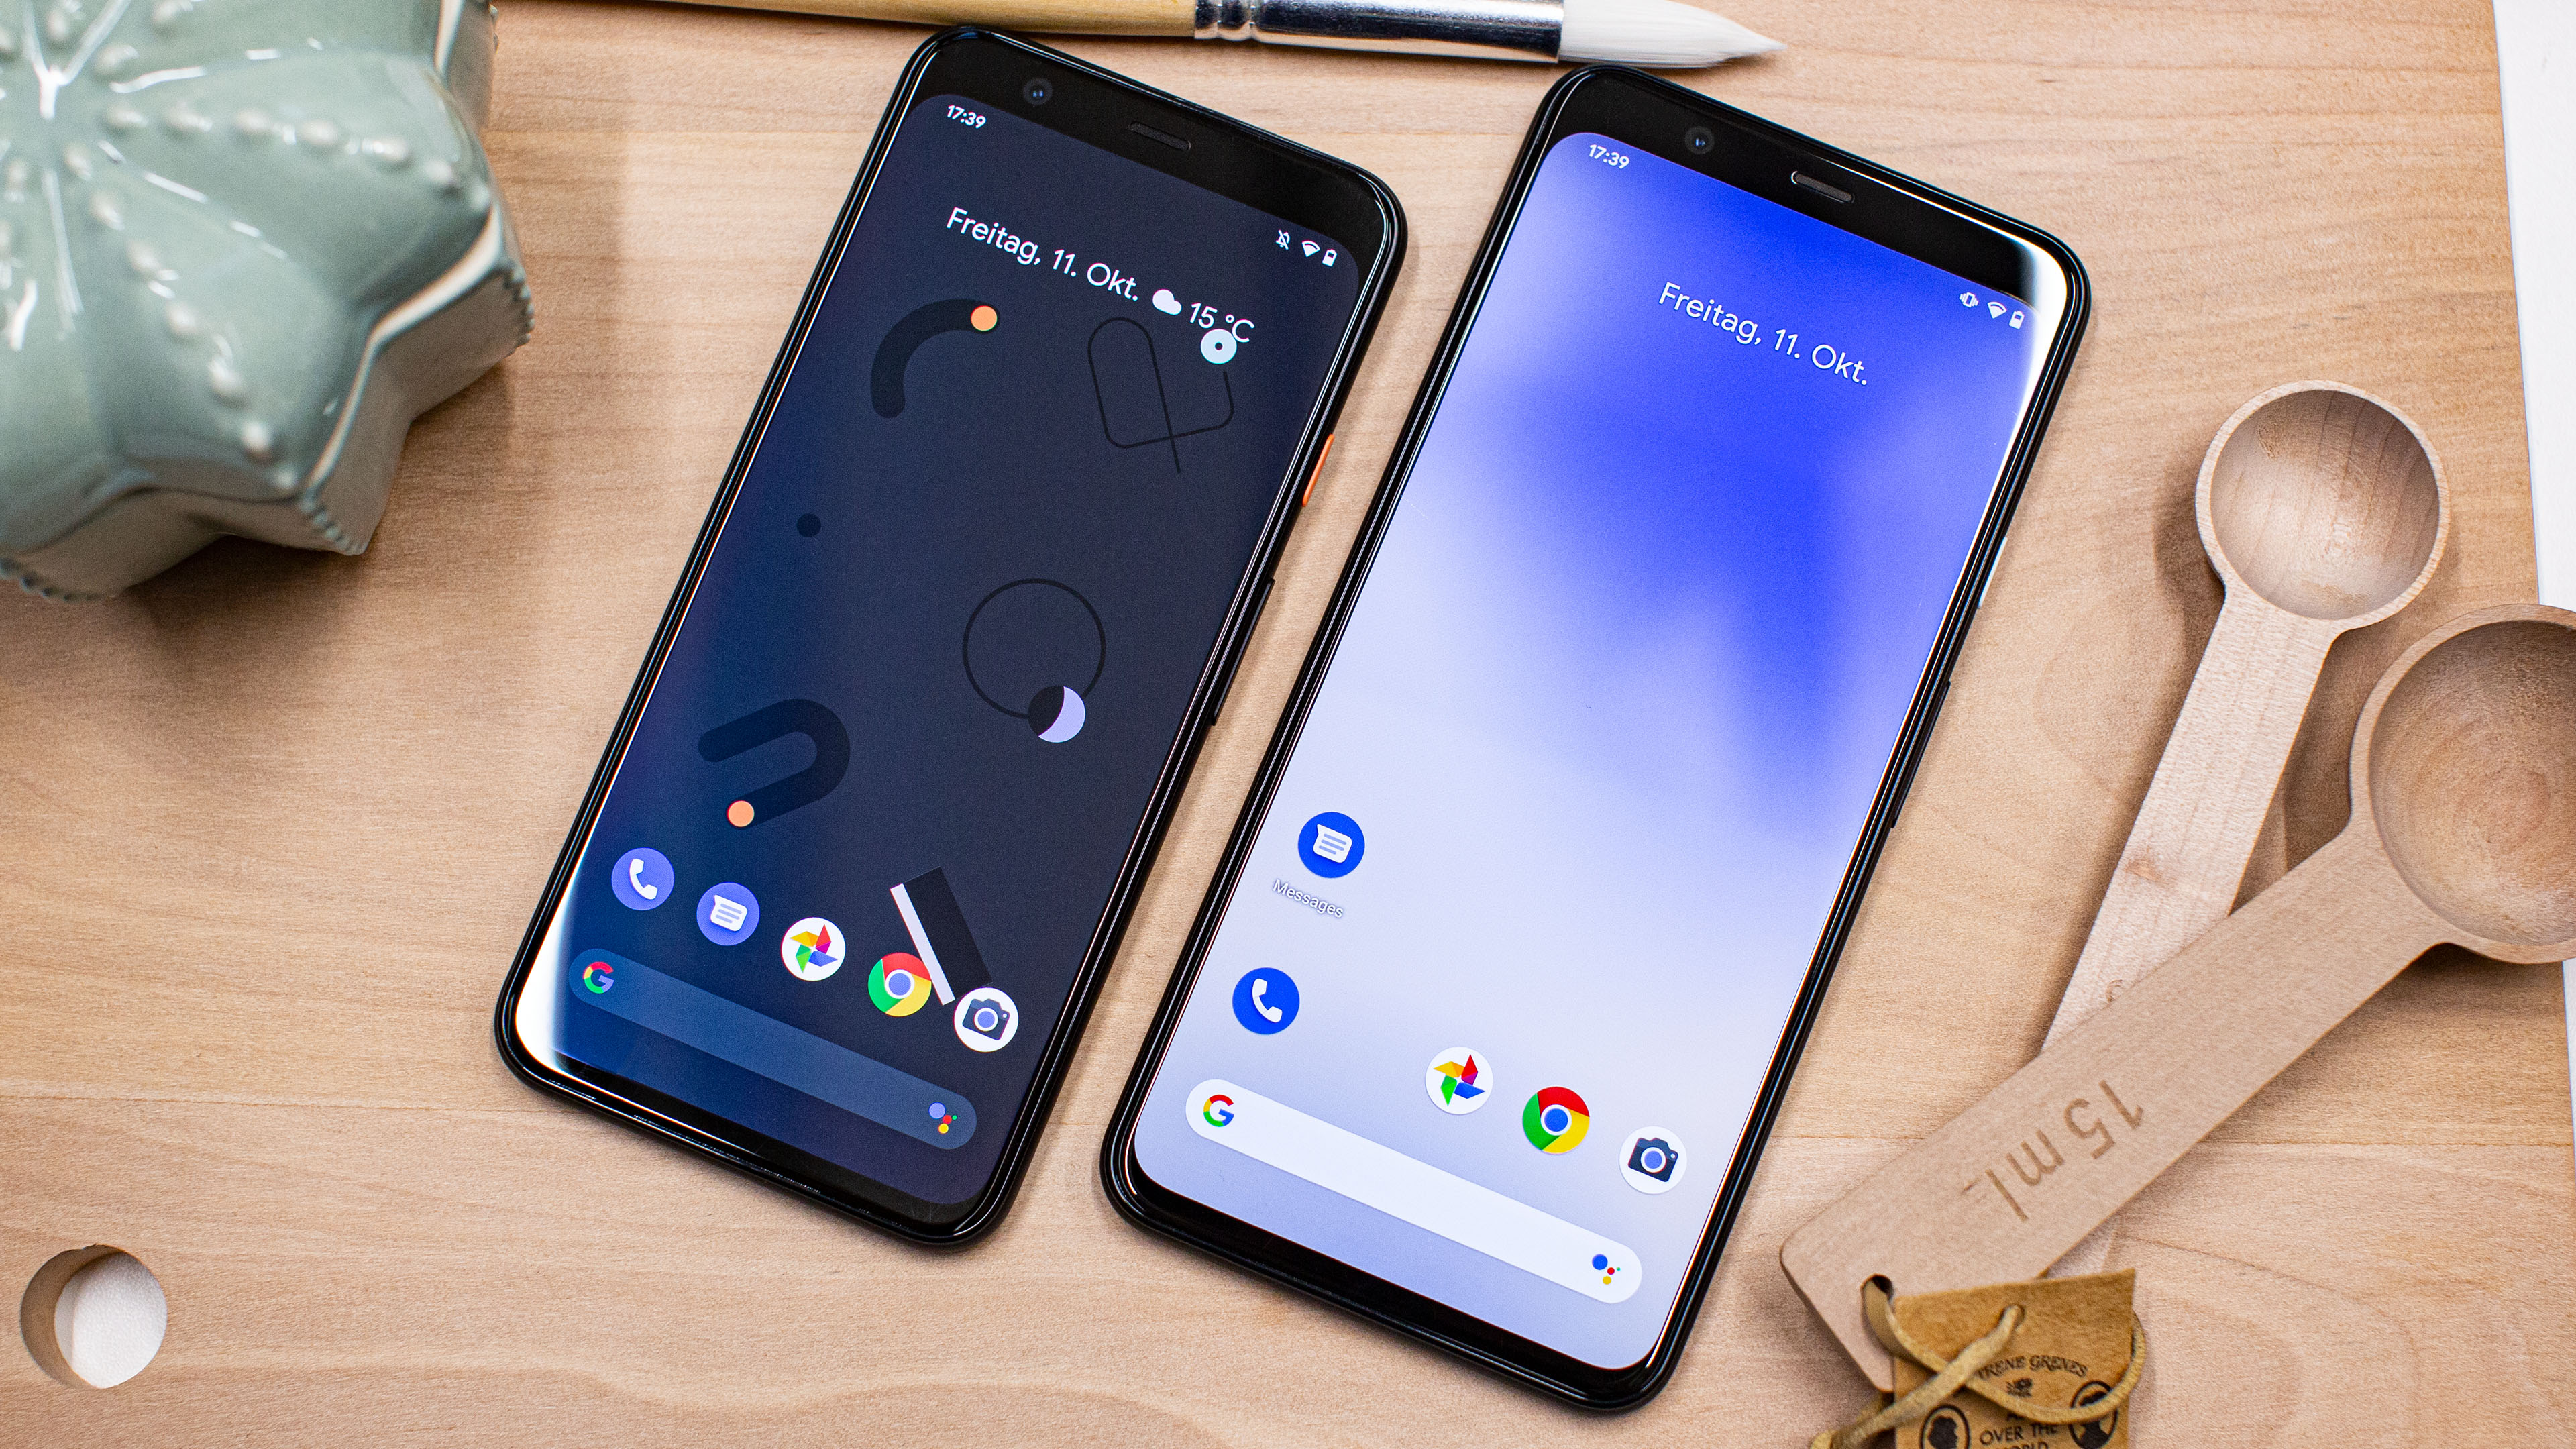 Google Pixel 4 Vs Pixel 4 Xl What Are The Main Differences